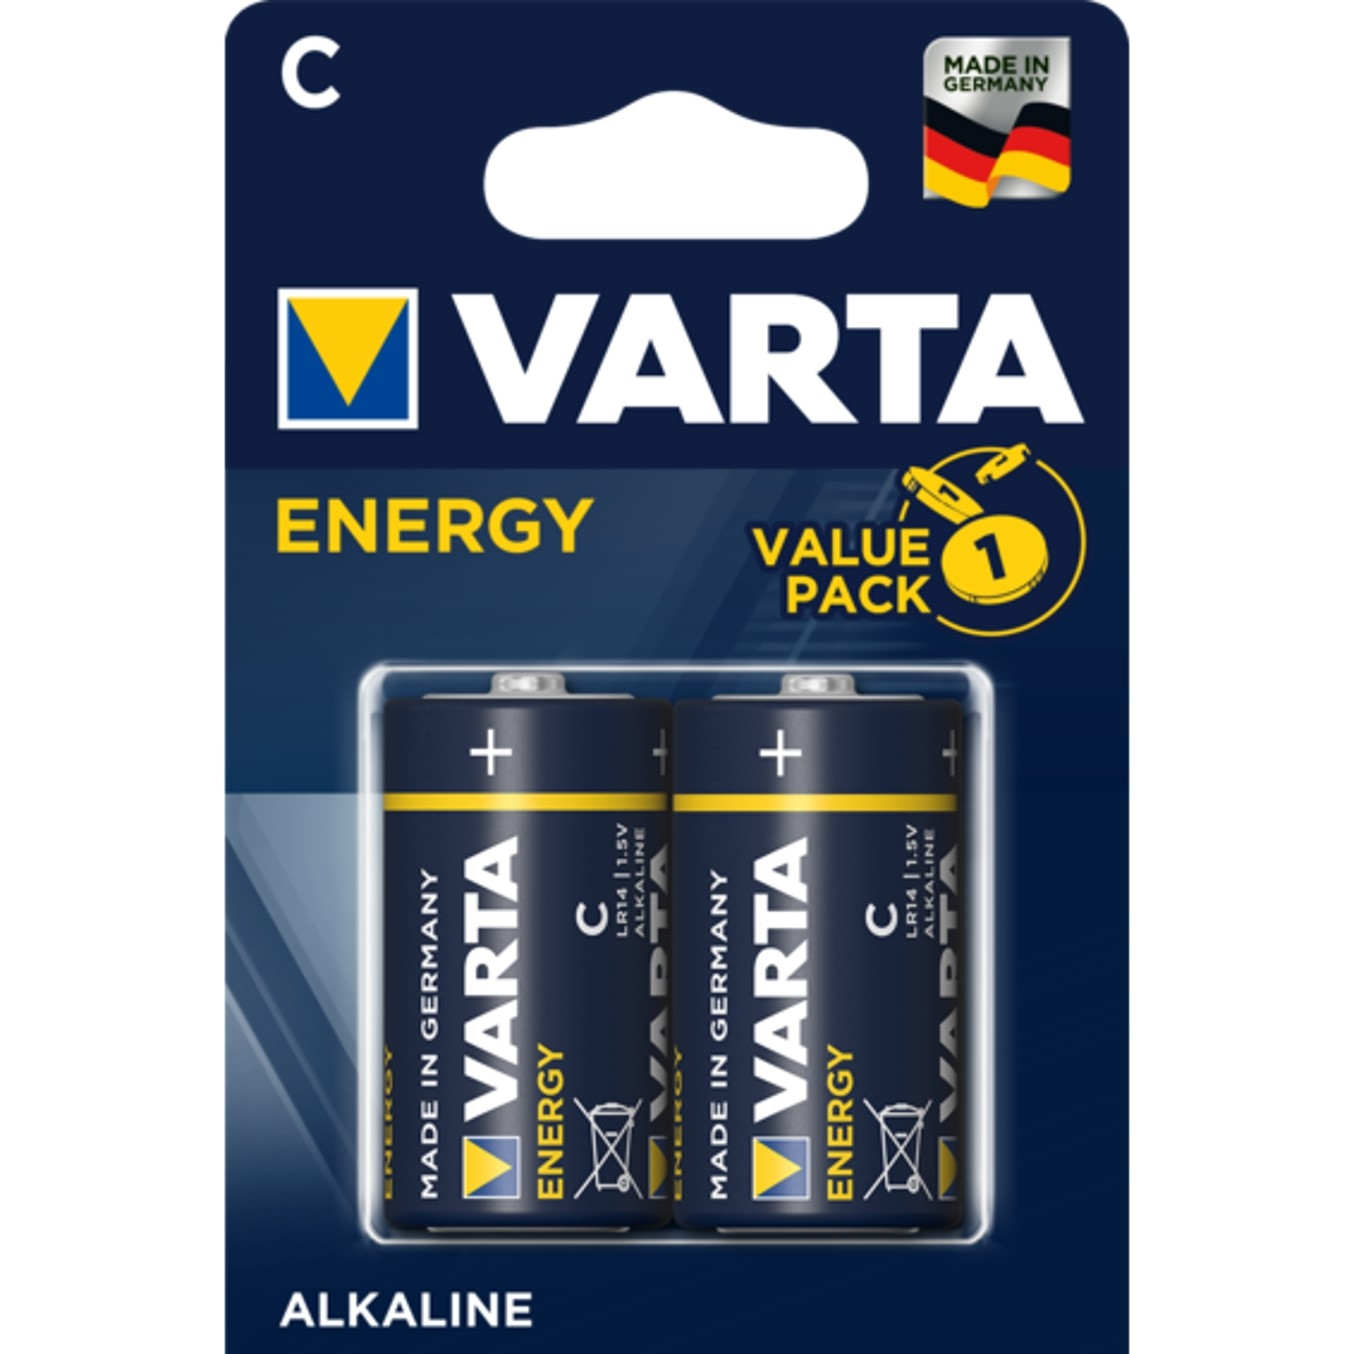 Varta Energy, Retail Blister (2-Pack)